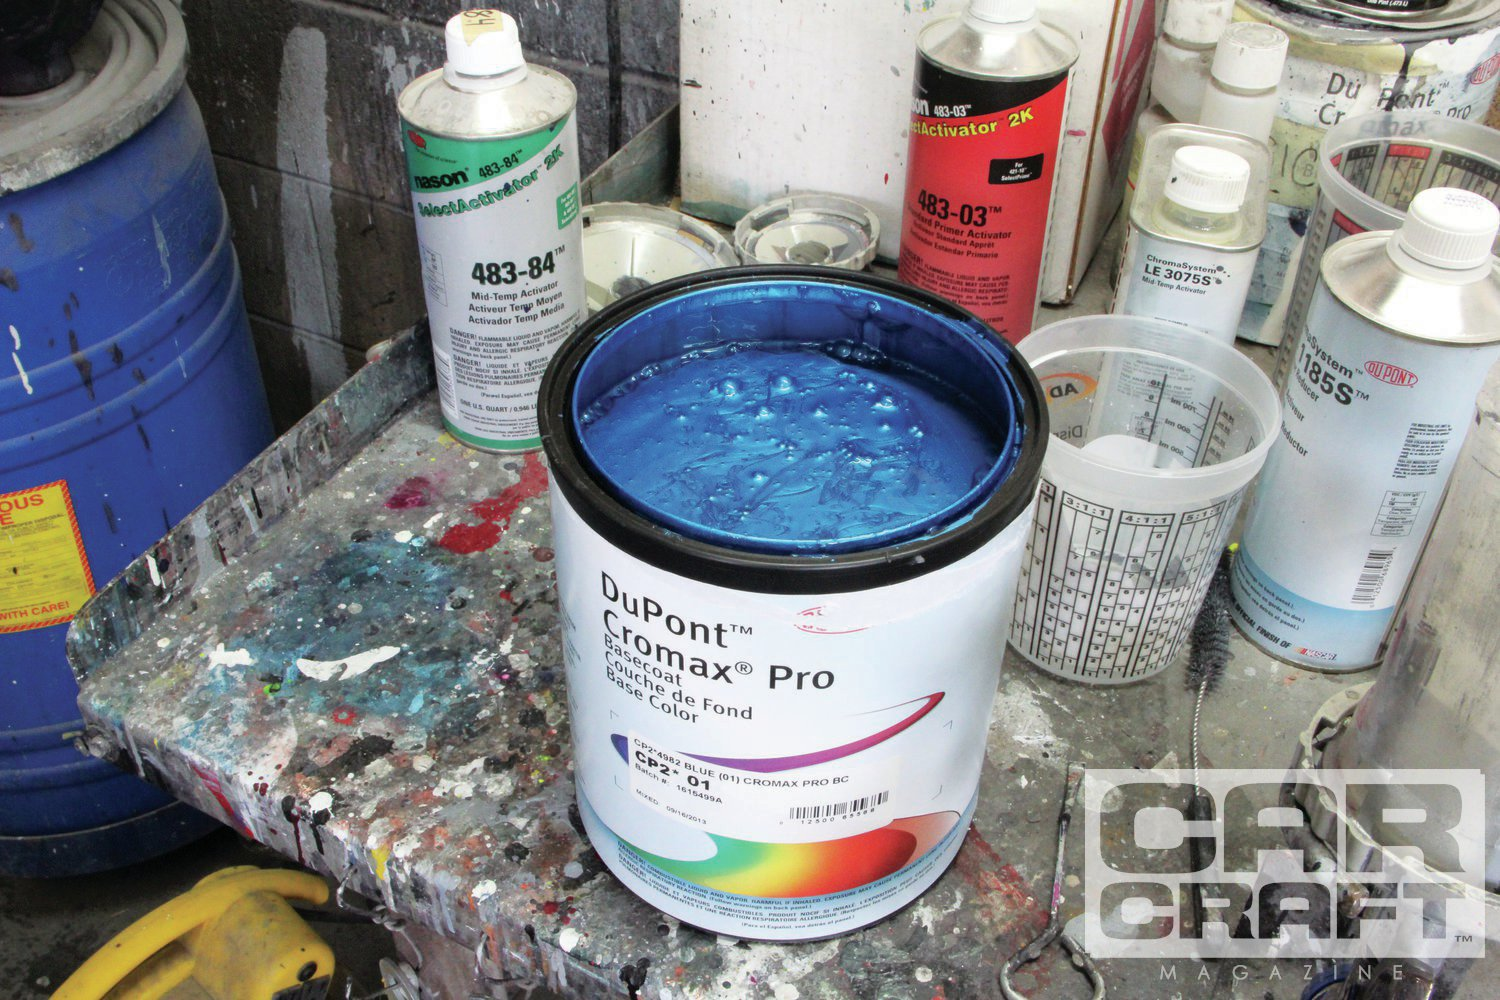 There are two ways to get a paint code. You can find the factory paint code using NOS chips off the Internet or use the batch number of a paint color that you like. The base blue is 1615499A.